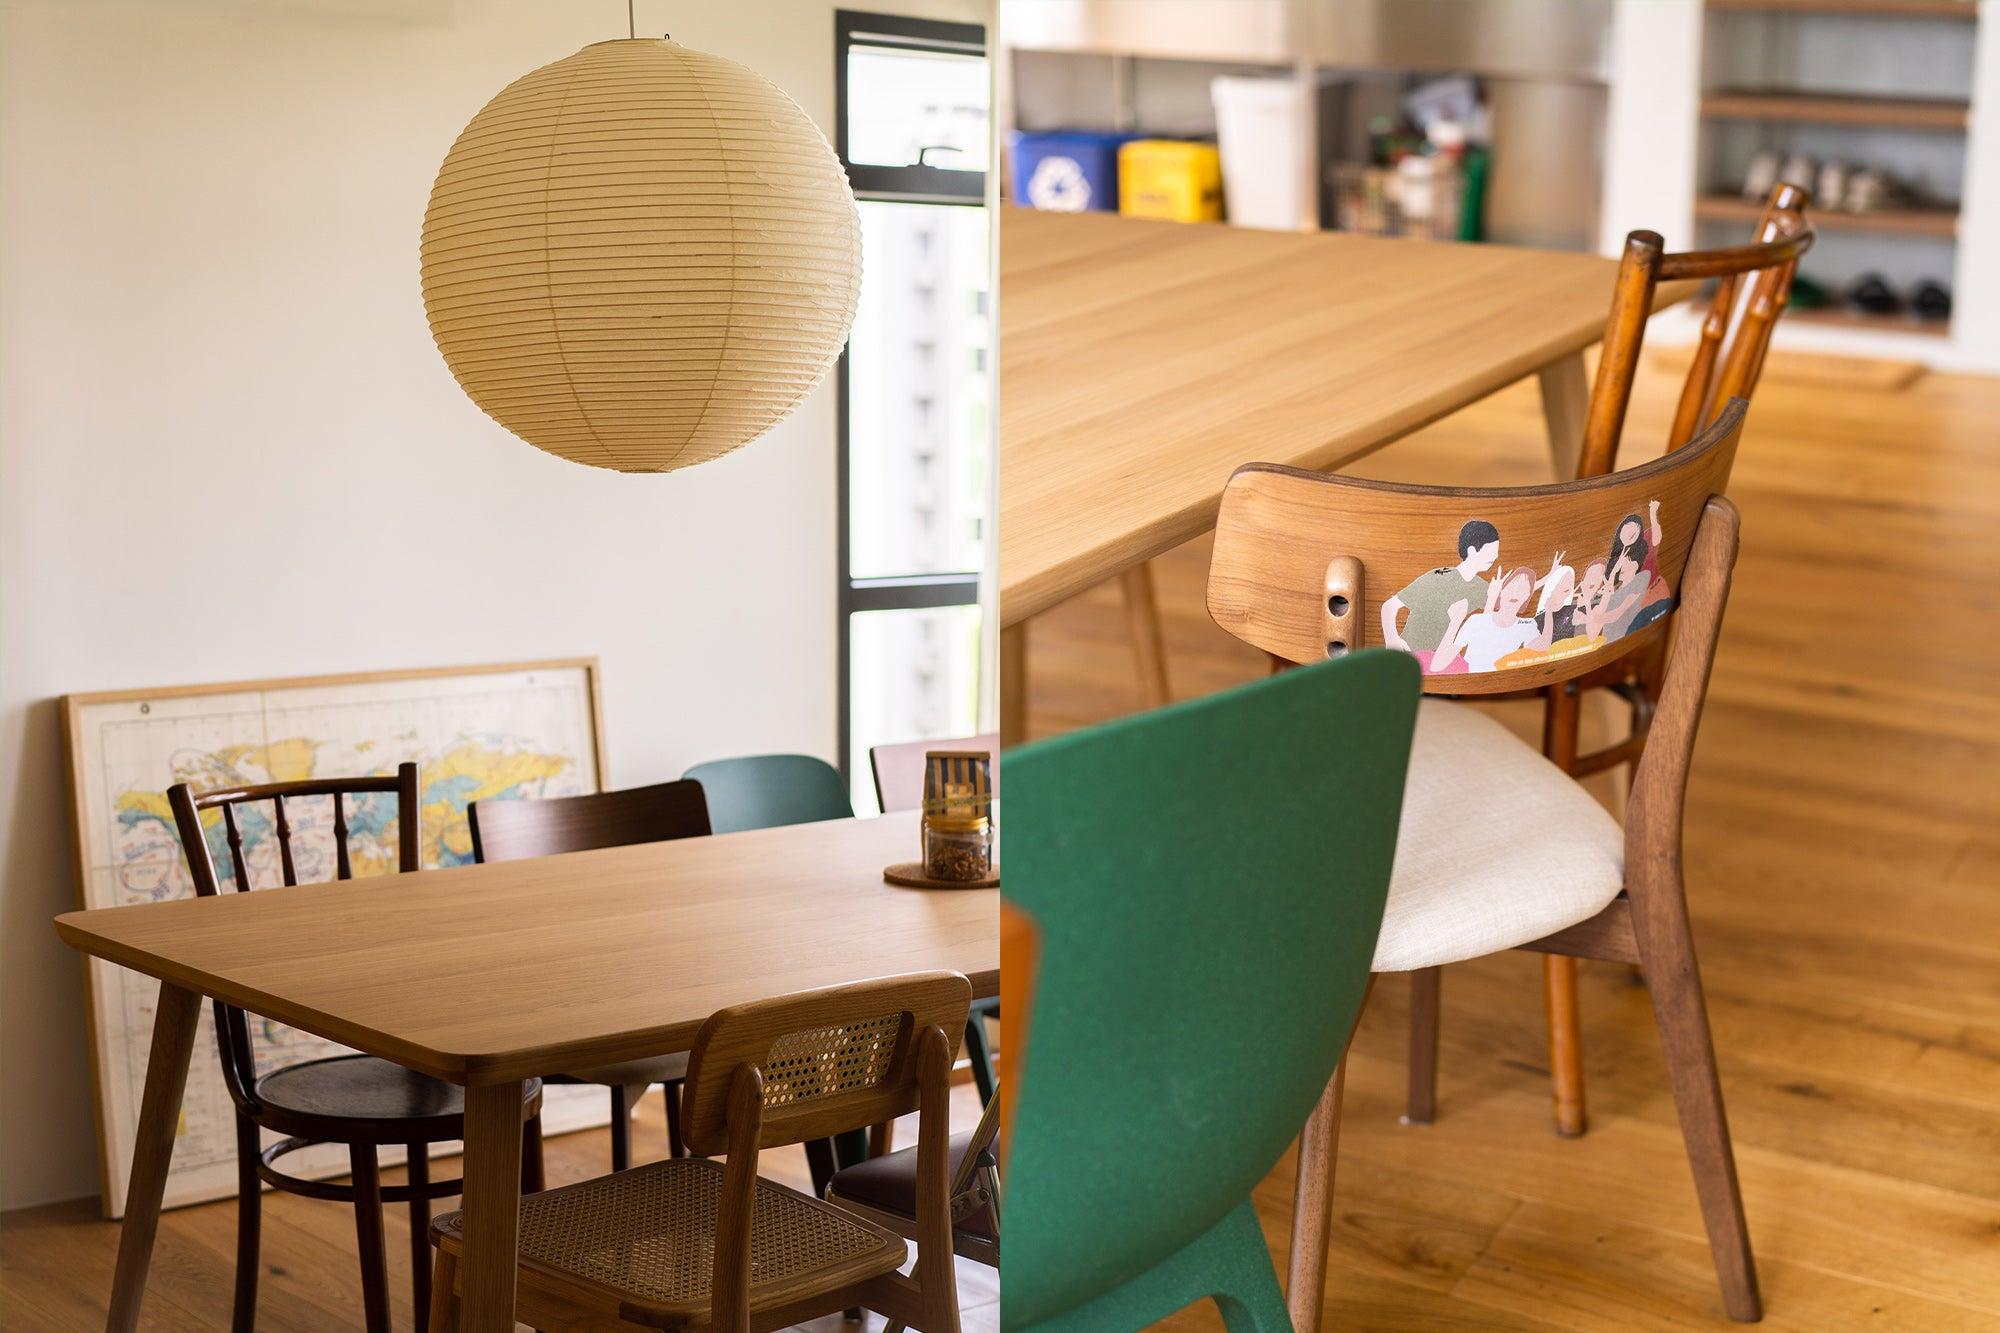 Dining Table Chair Assortment Mismatch Coworking Living Space Ideas